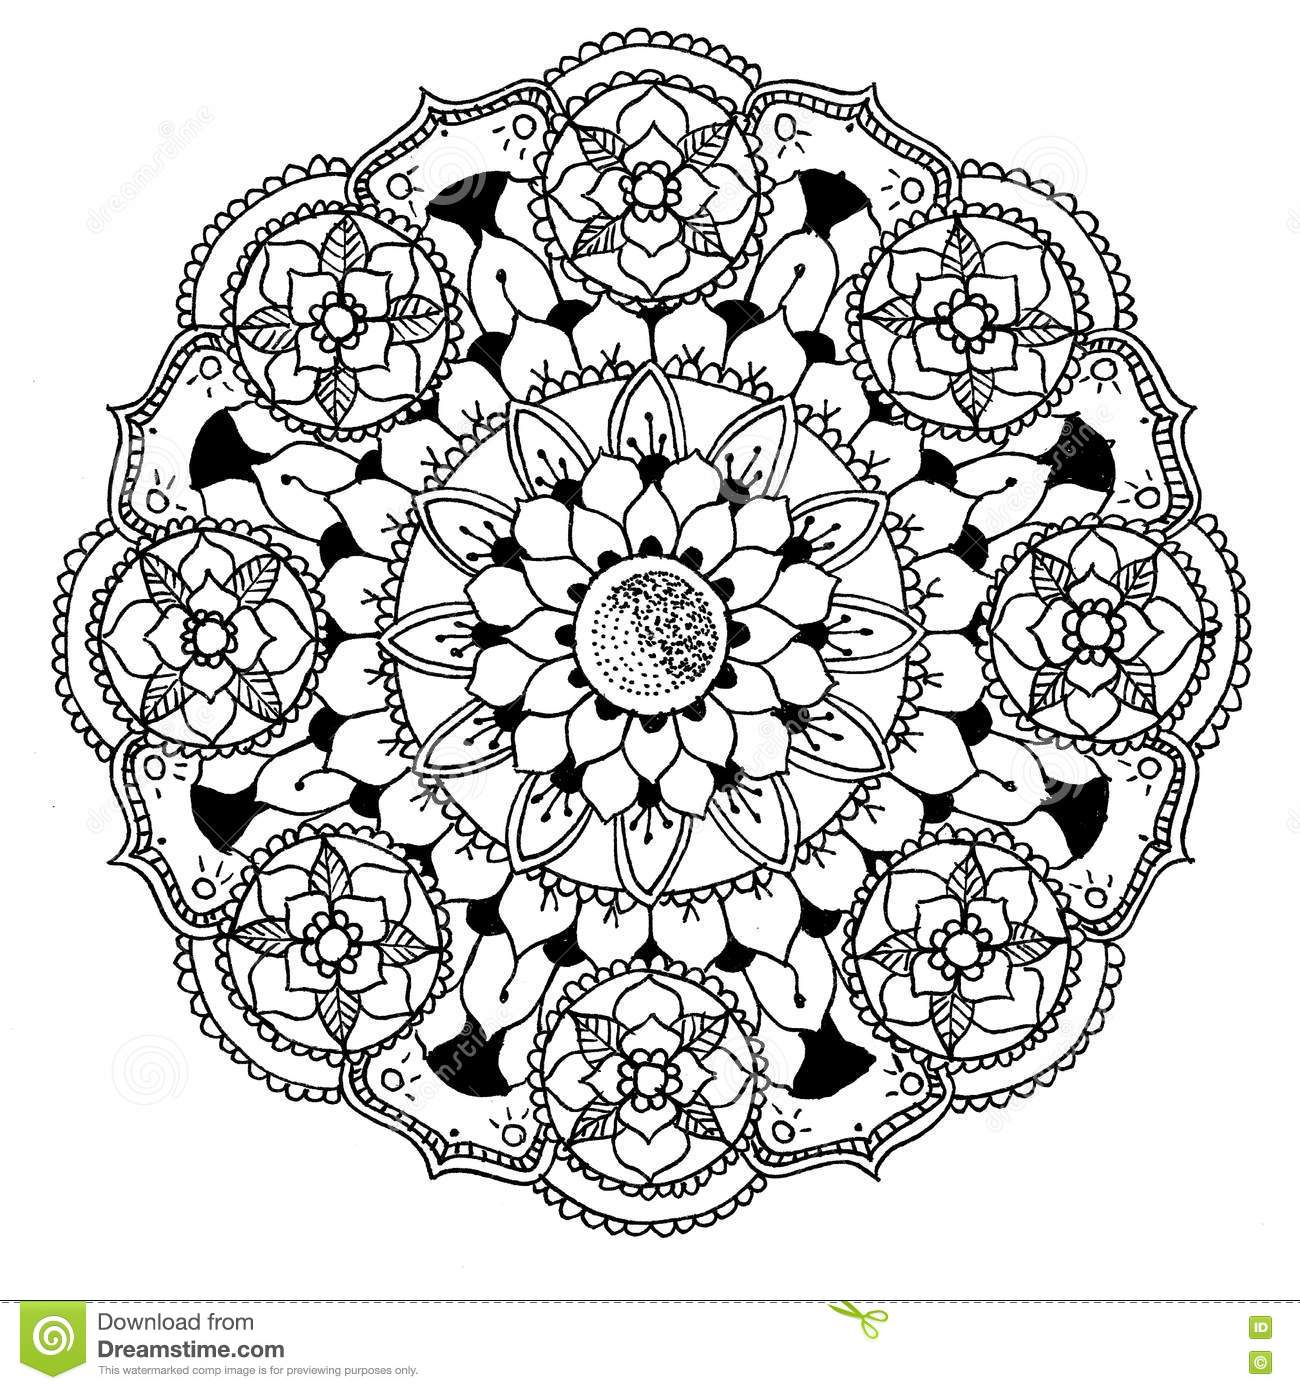 Mandala Da Colorare Illustrazione Di Stock Illustrazione Di Mandala